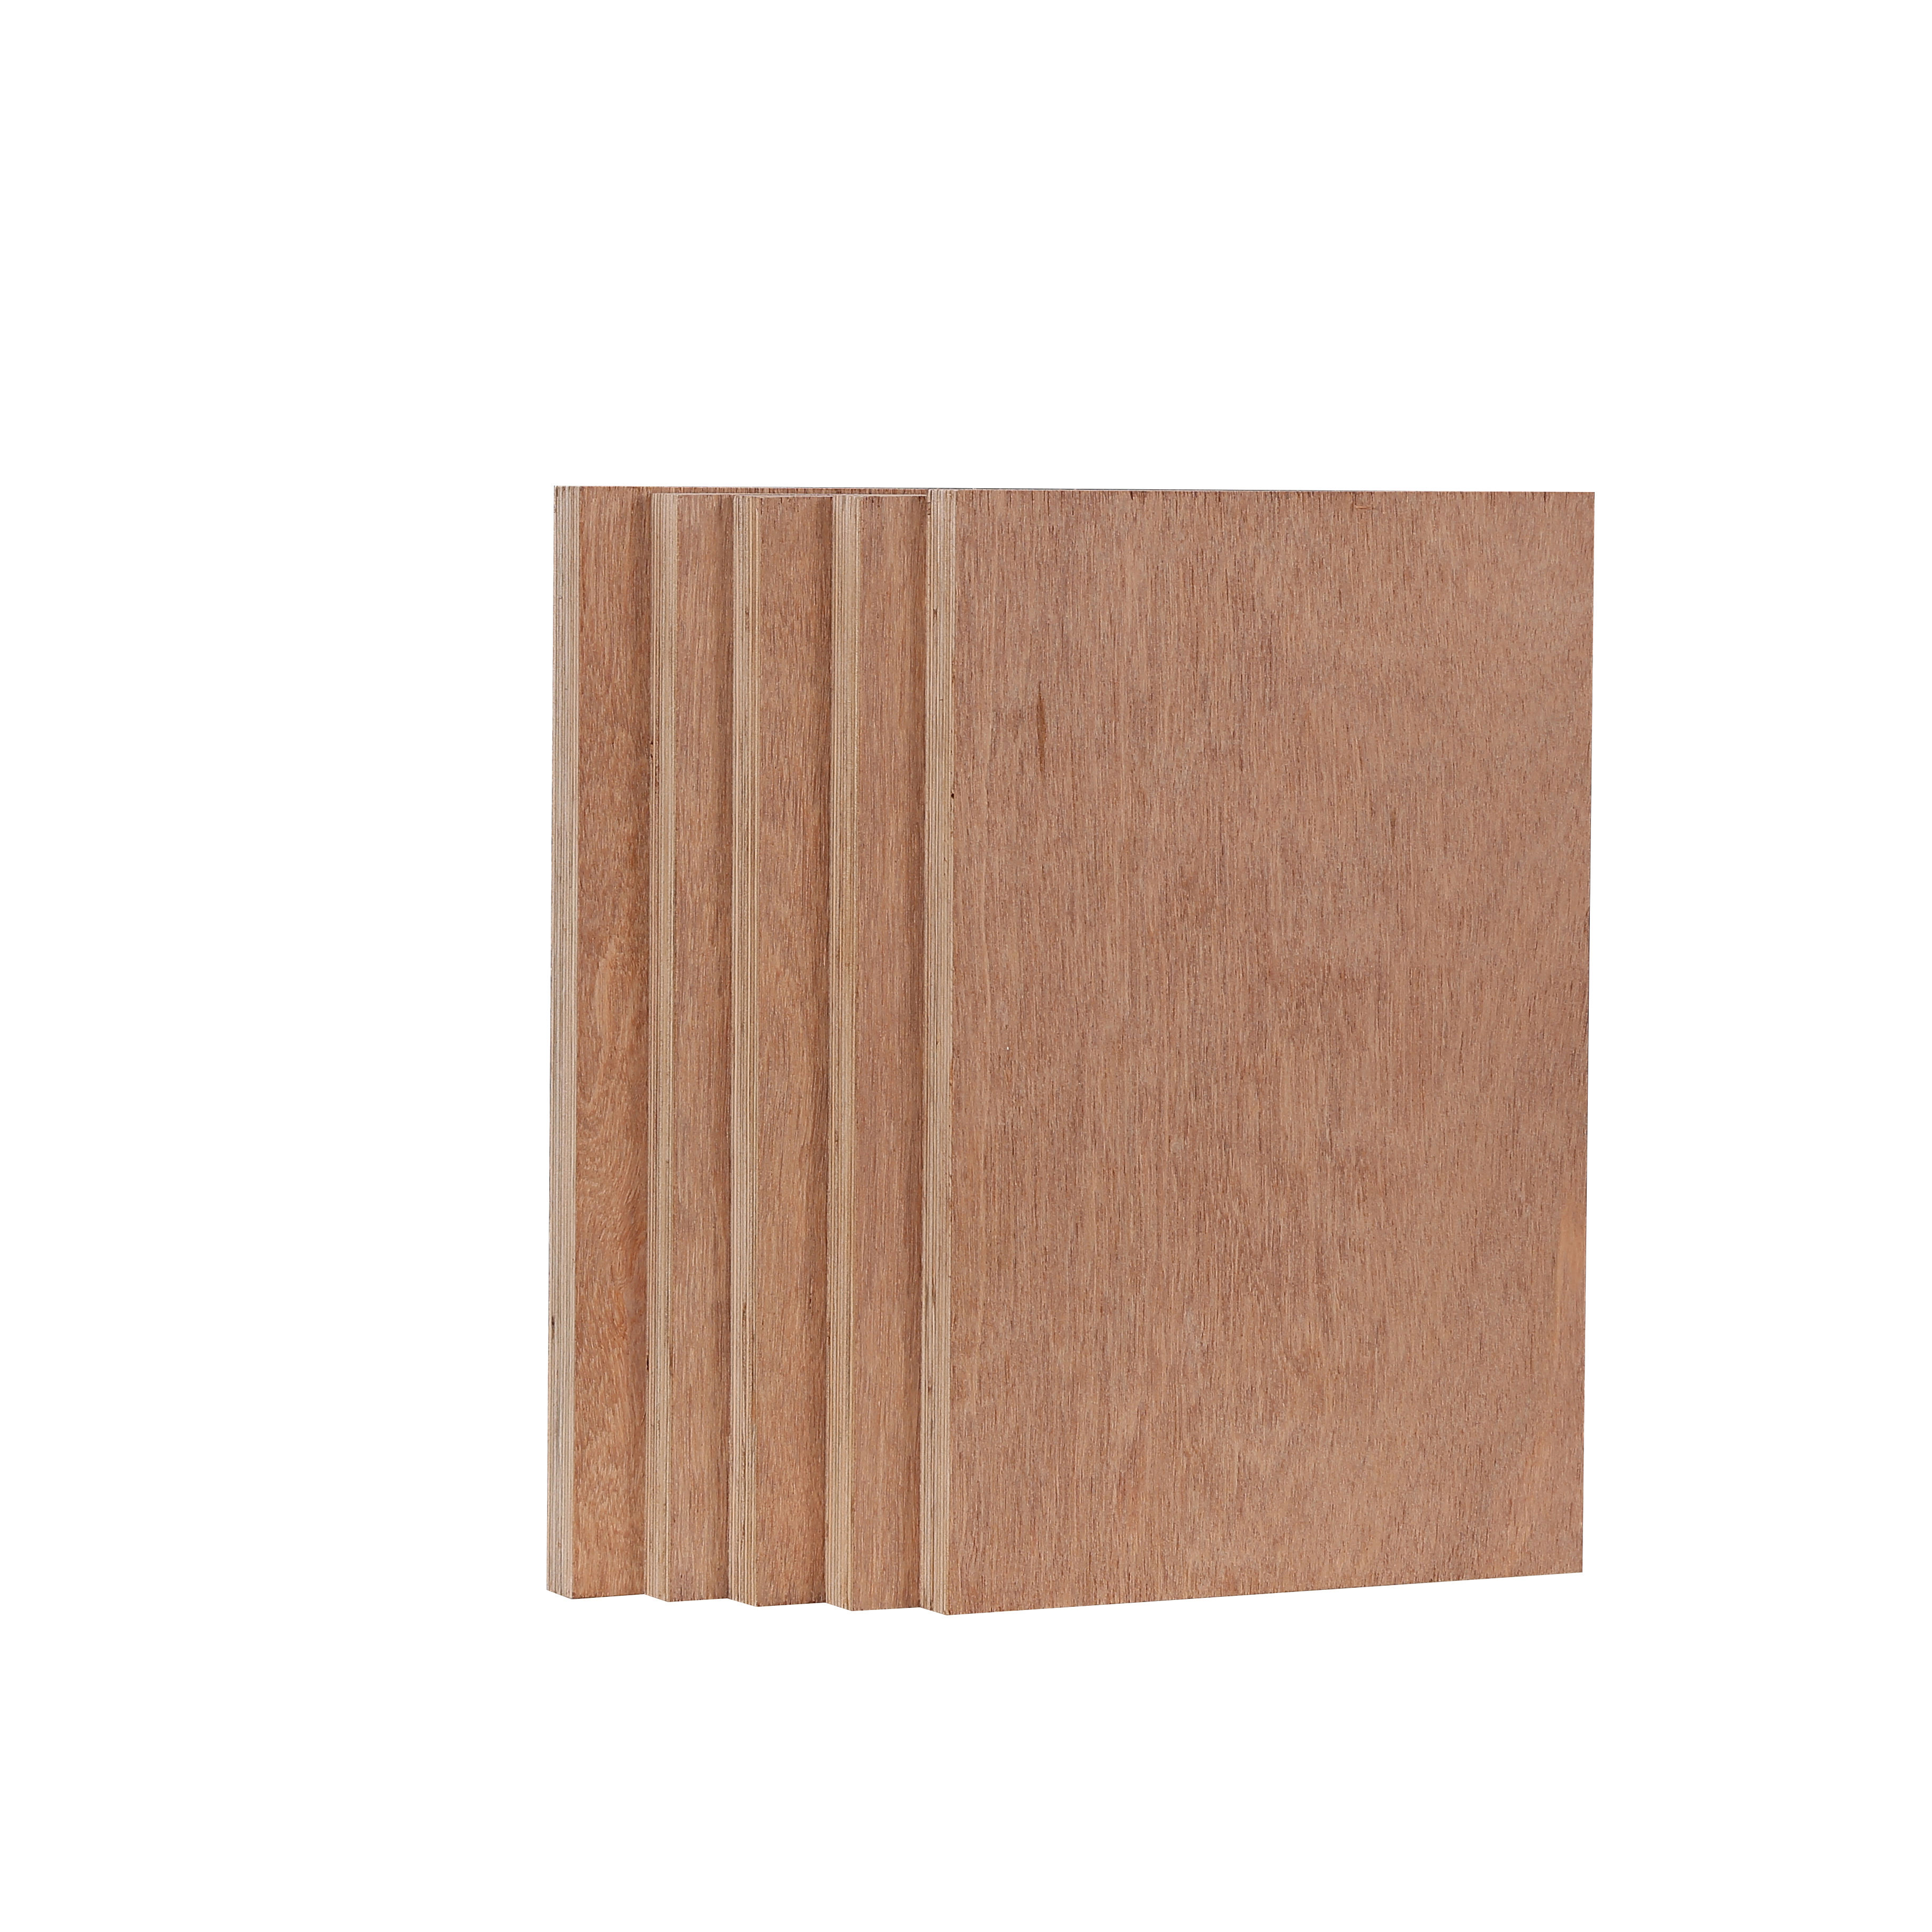 Outer Use Plywood Sheet 18mm 4X8 Marine Plywood BS1088 Standard Keruing Face Eucalyptus Core BB/BB FSC CE JAS F4 Stars Anti-Wate